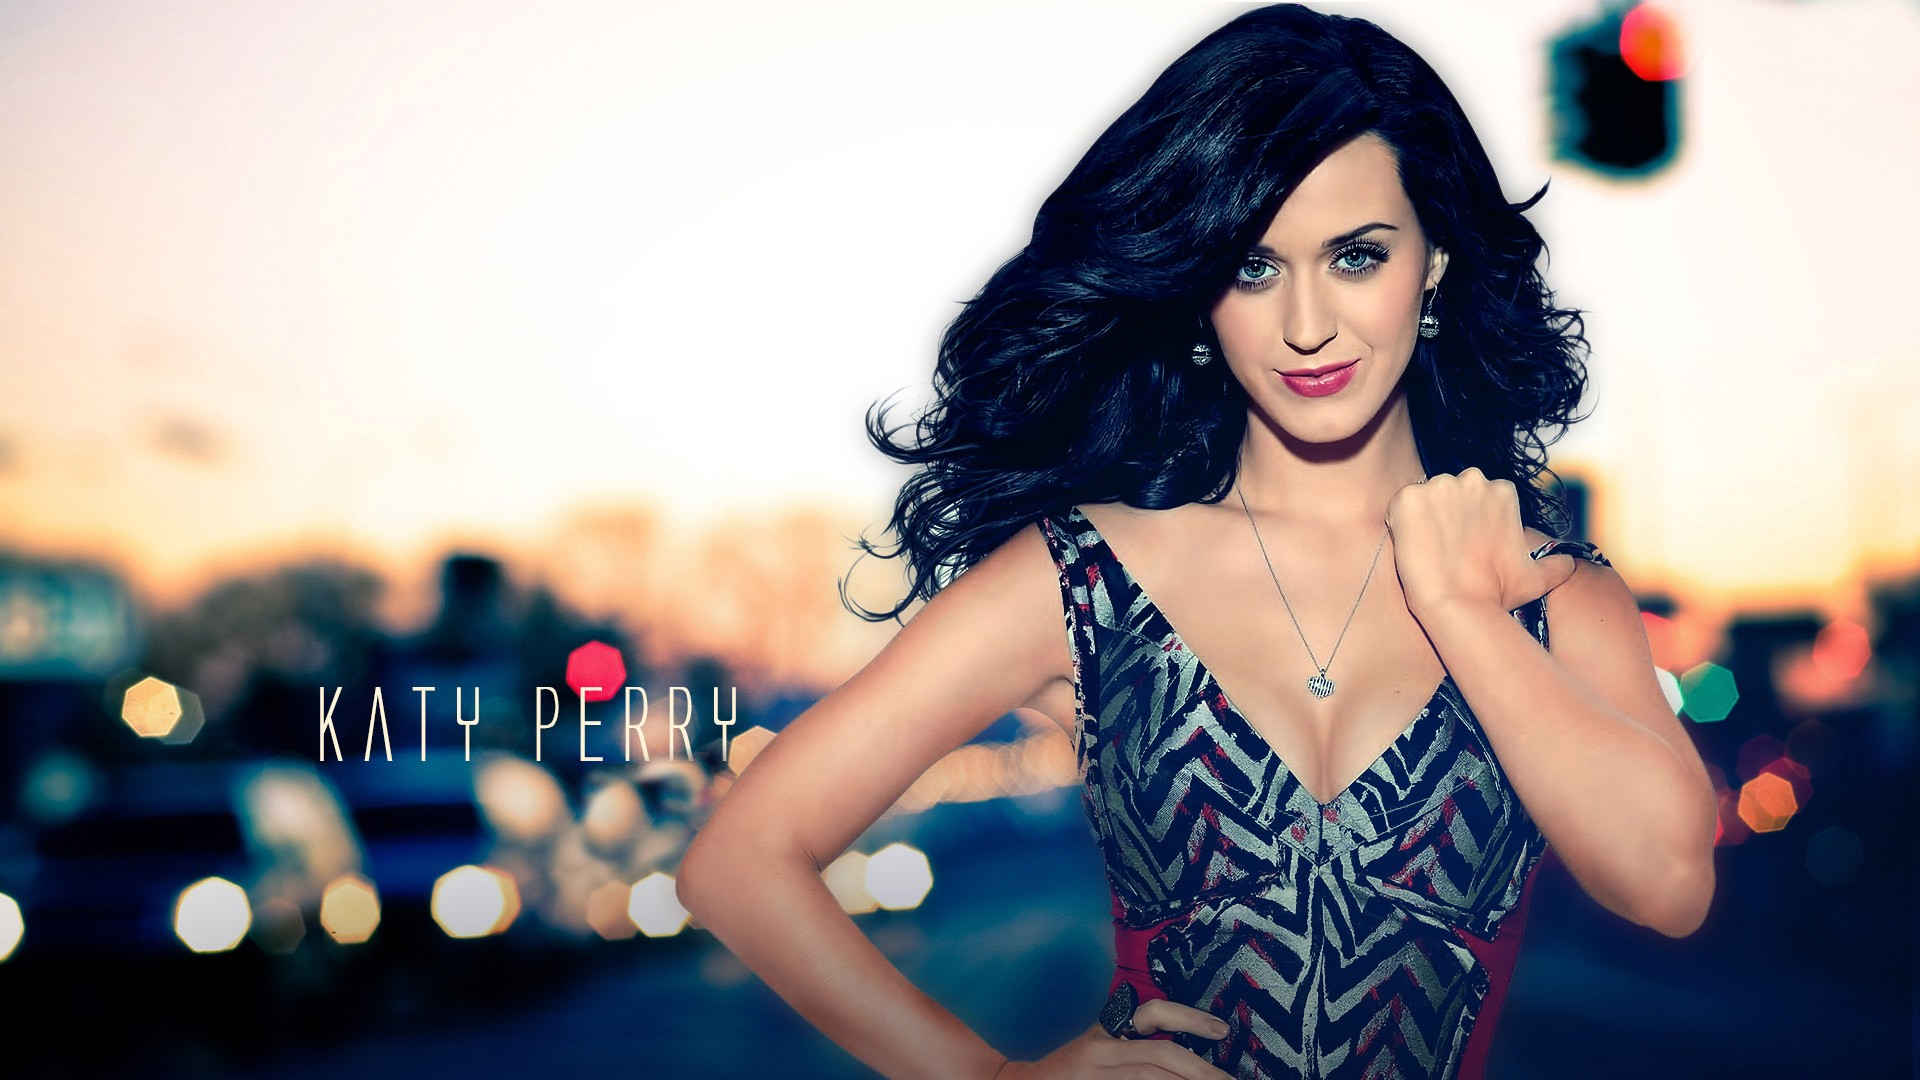 Katy Perry Wallpaper 1 Download Free Beautiful HD Wallpapers Of